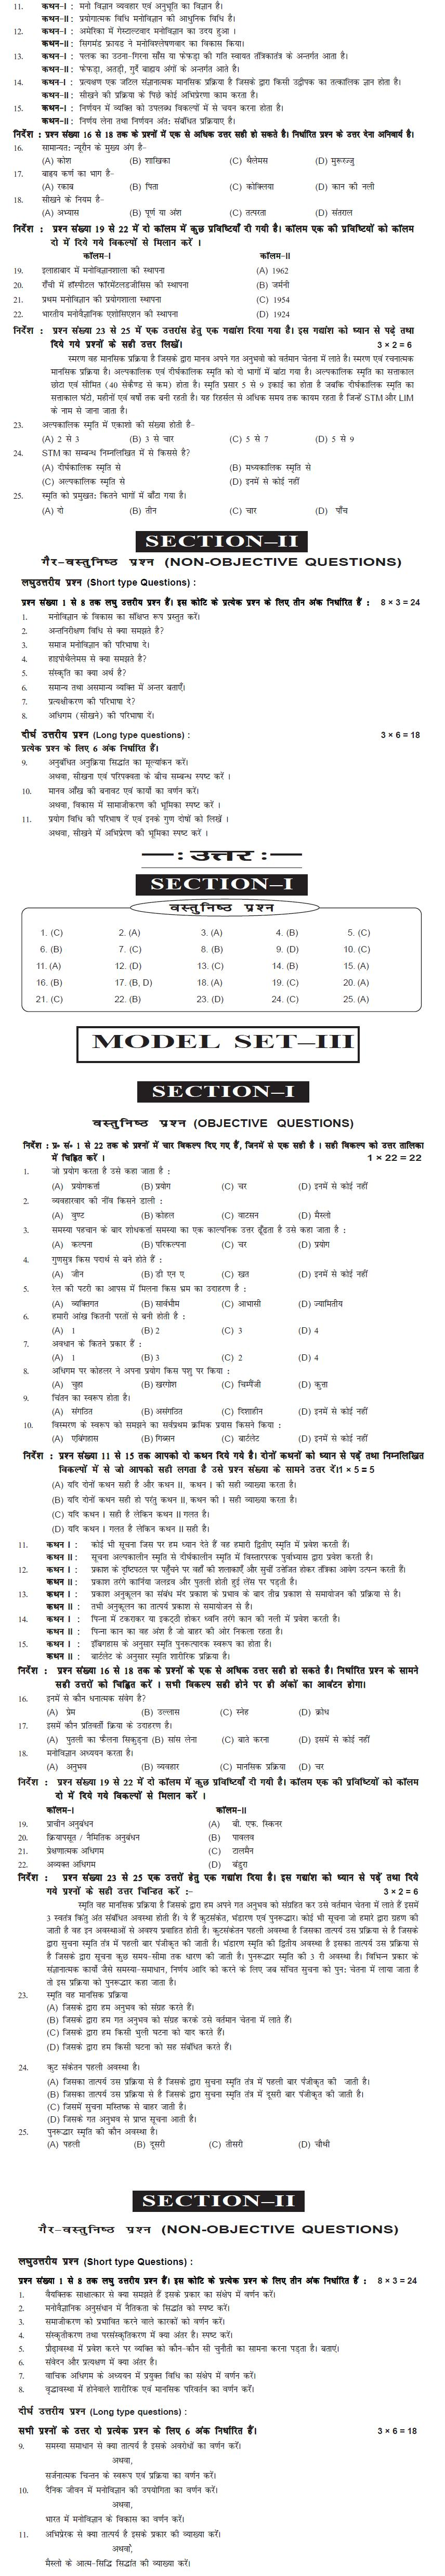 Bihar Board Class XI Arts Model Question Papers - Psychology